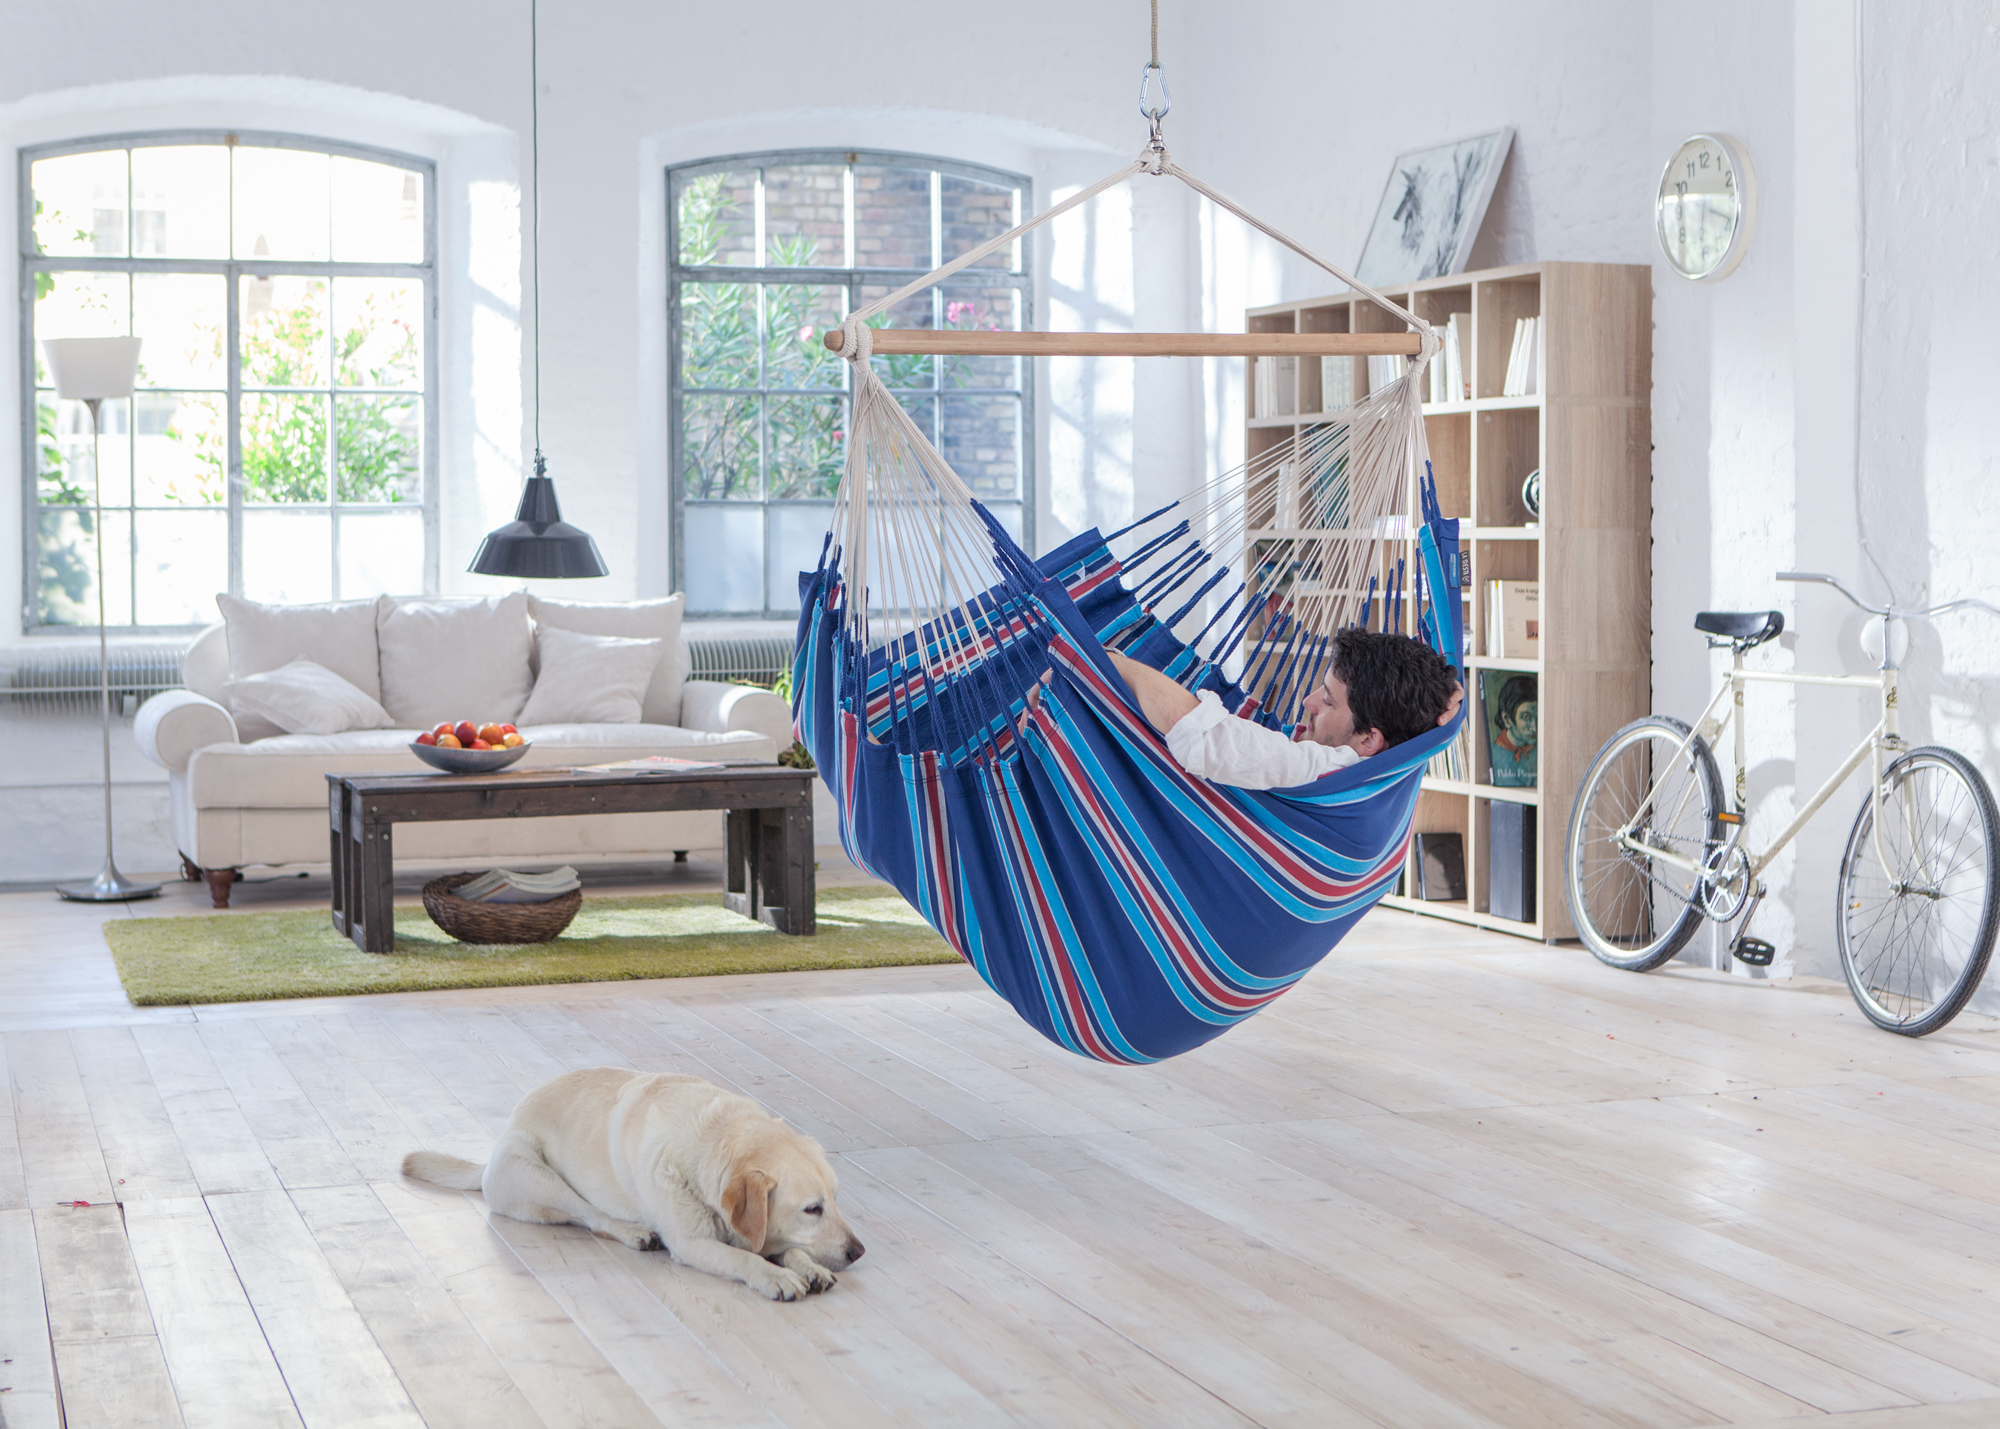 indoor big hammock chair twho person blue la siesta